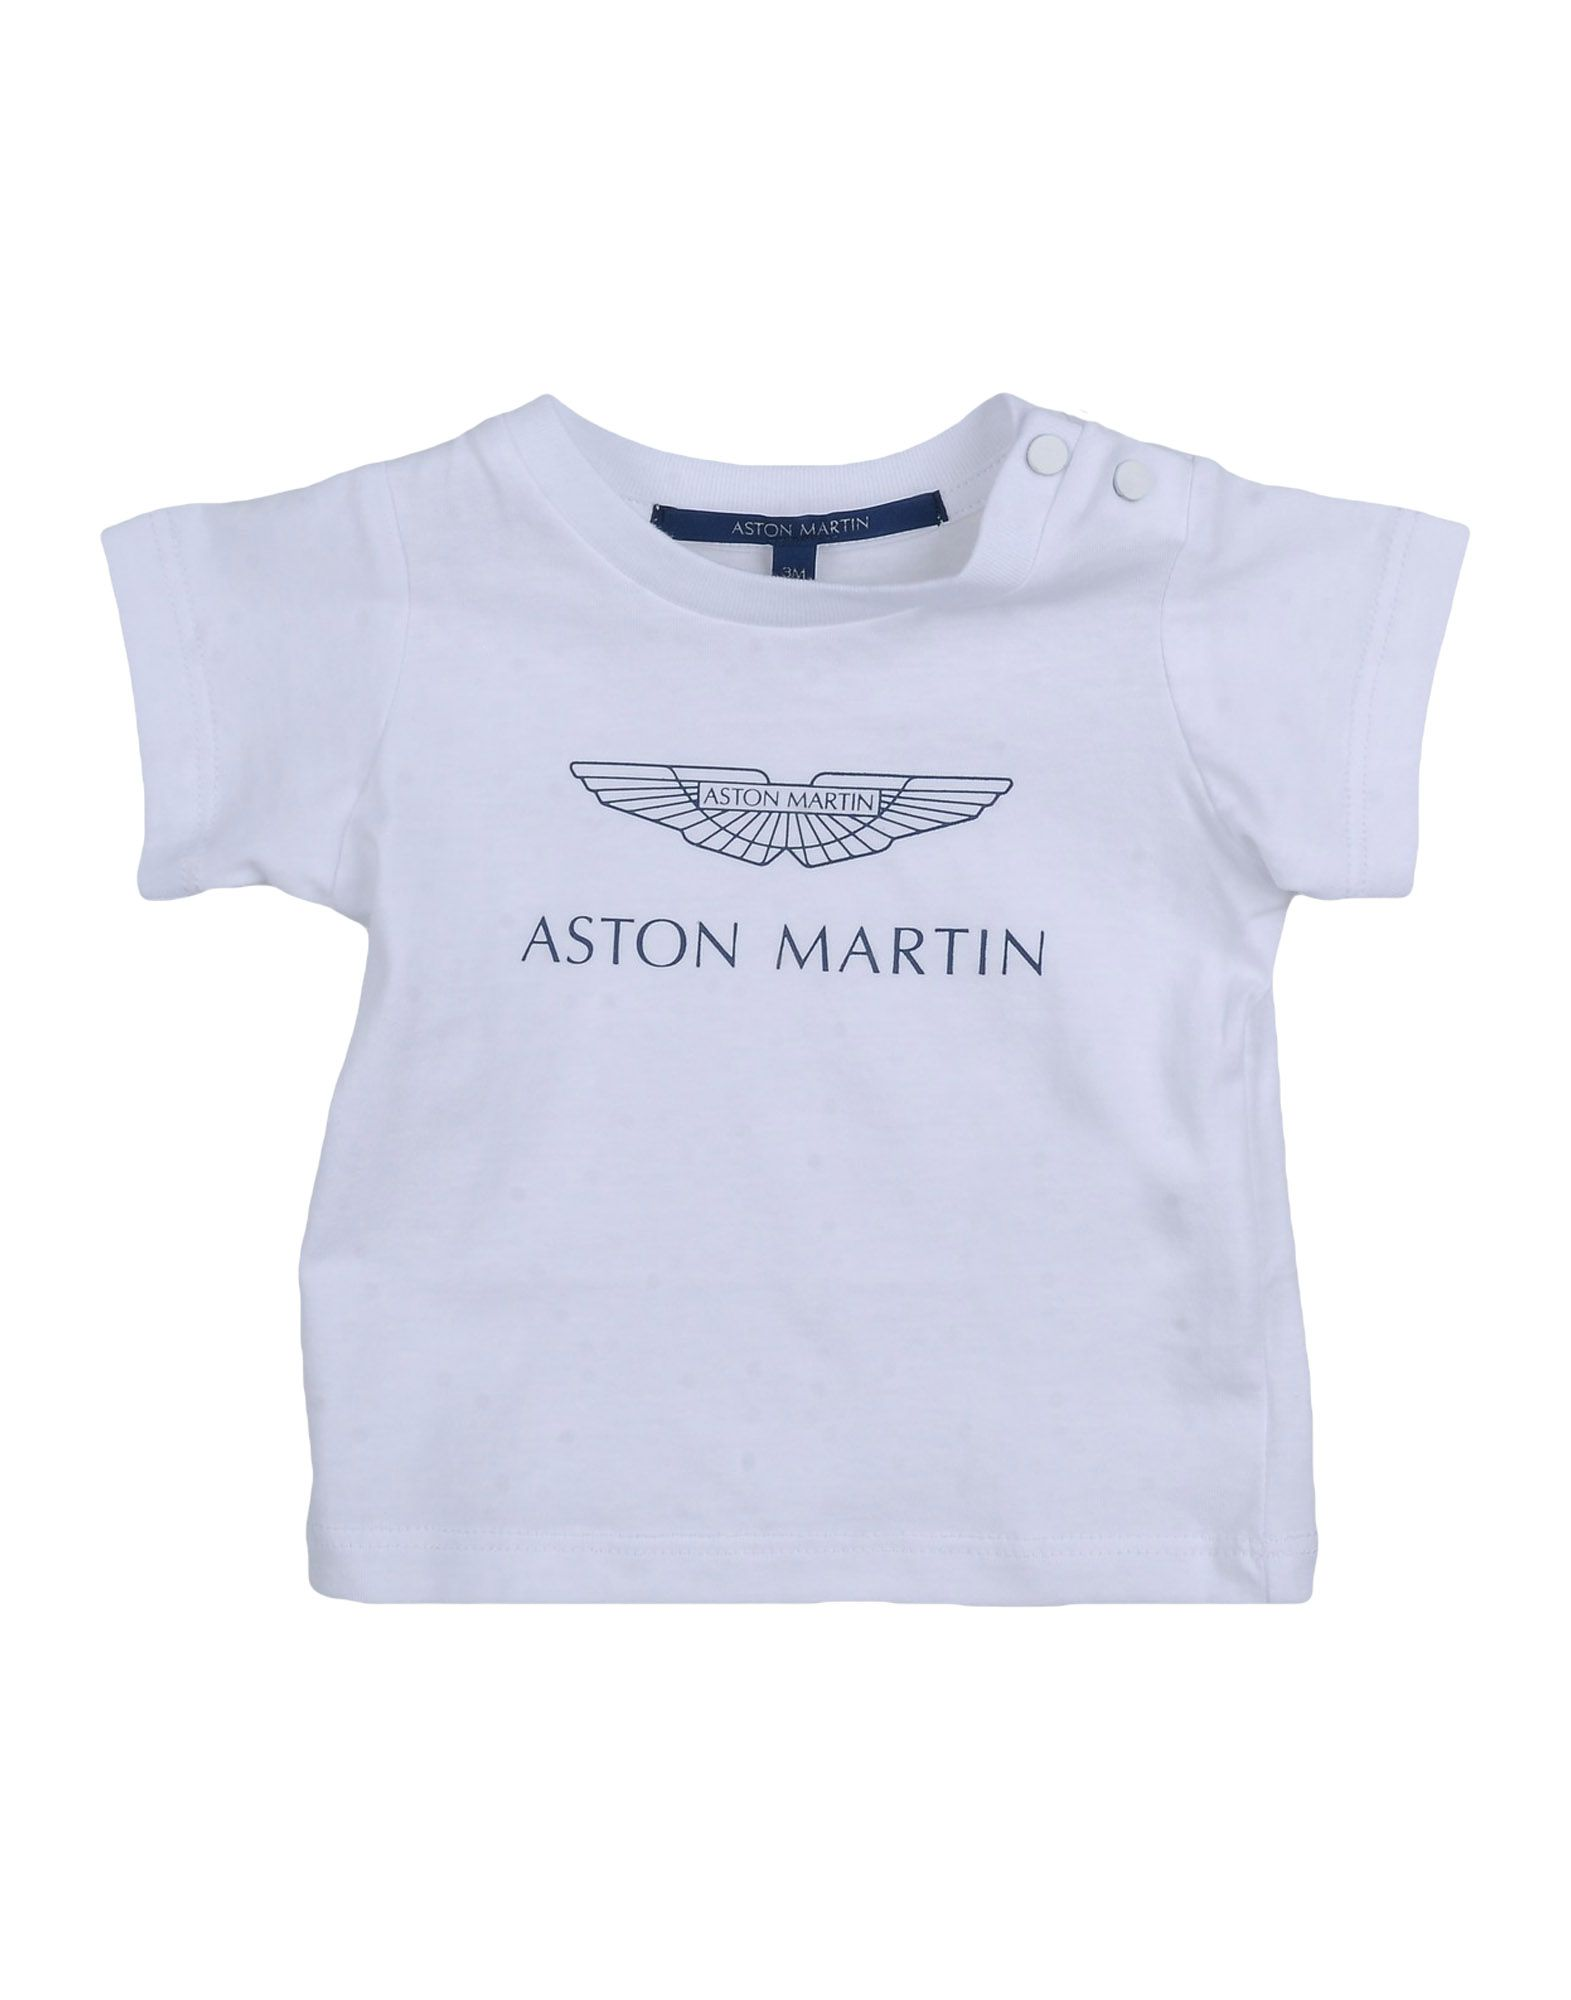 aston martin t-shirt boy 0-24 months online on yoox united states